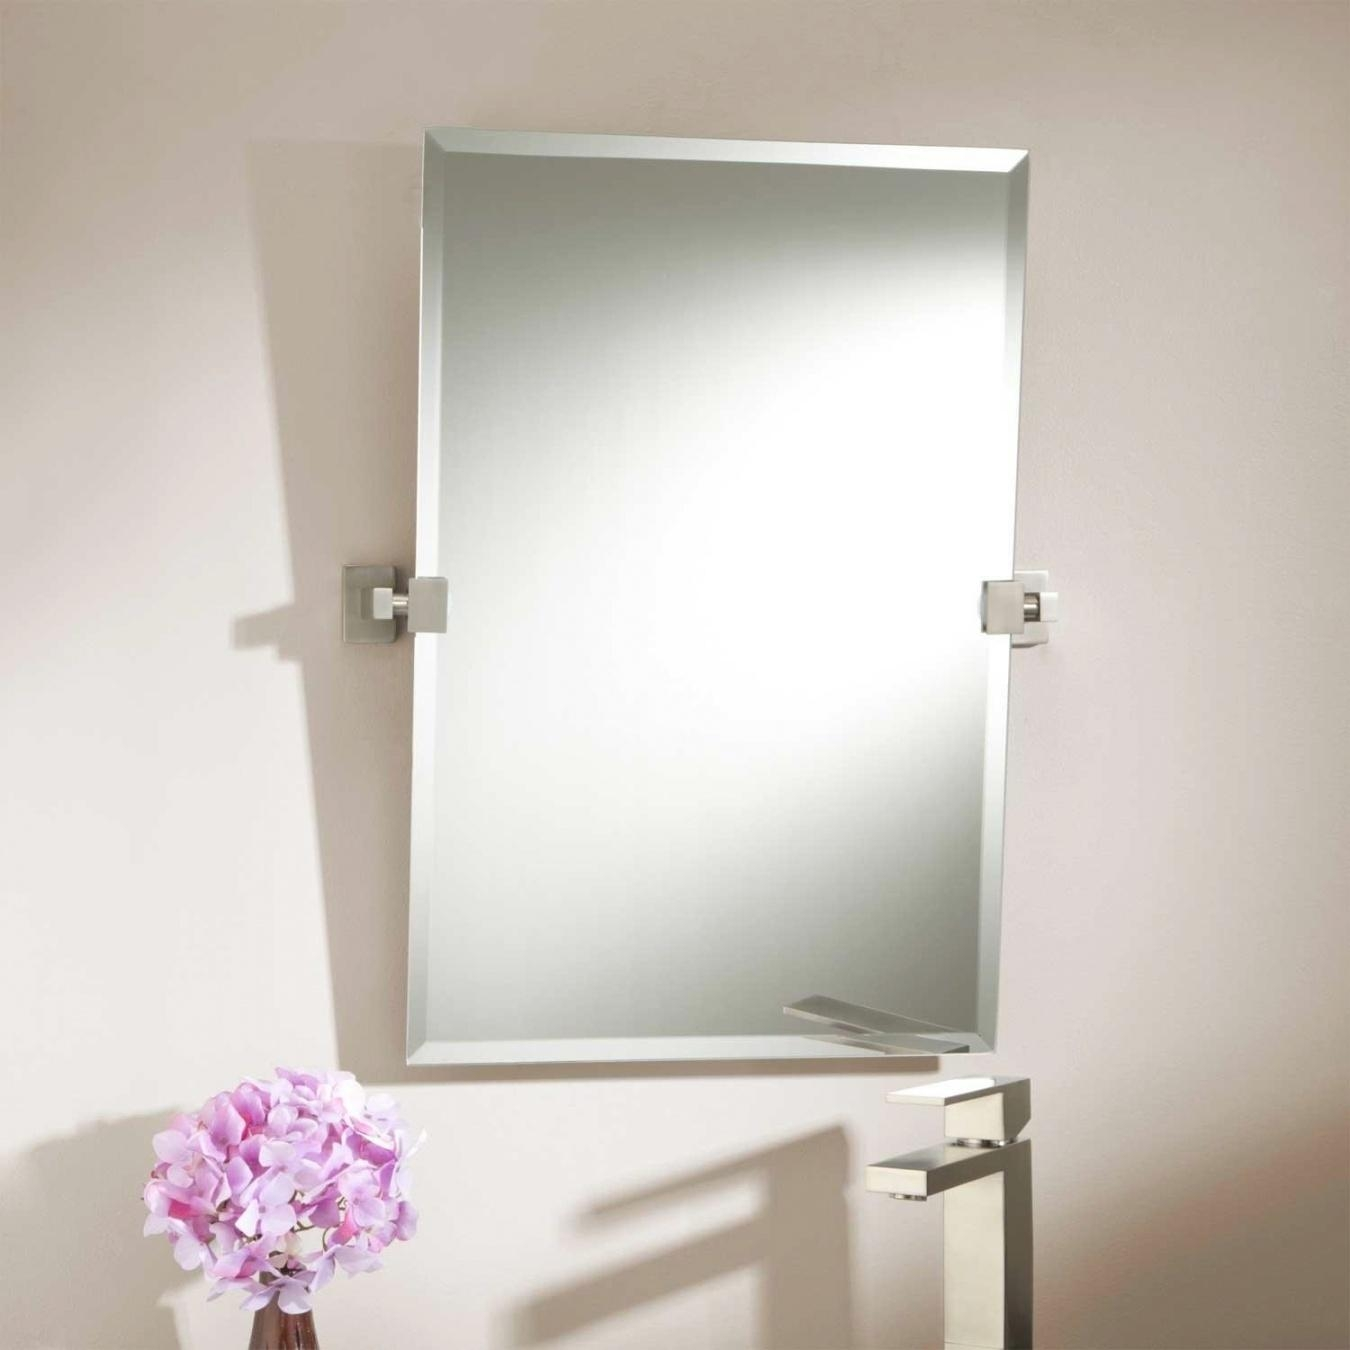 Pivot Mirrors For Bathroom – Inspiration Bathroom Throughout Pivot Mirrors For Bathroom (Image 17 of 20)